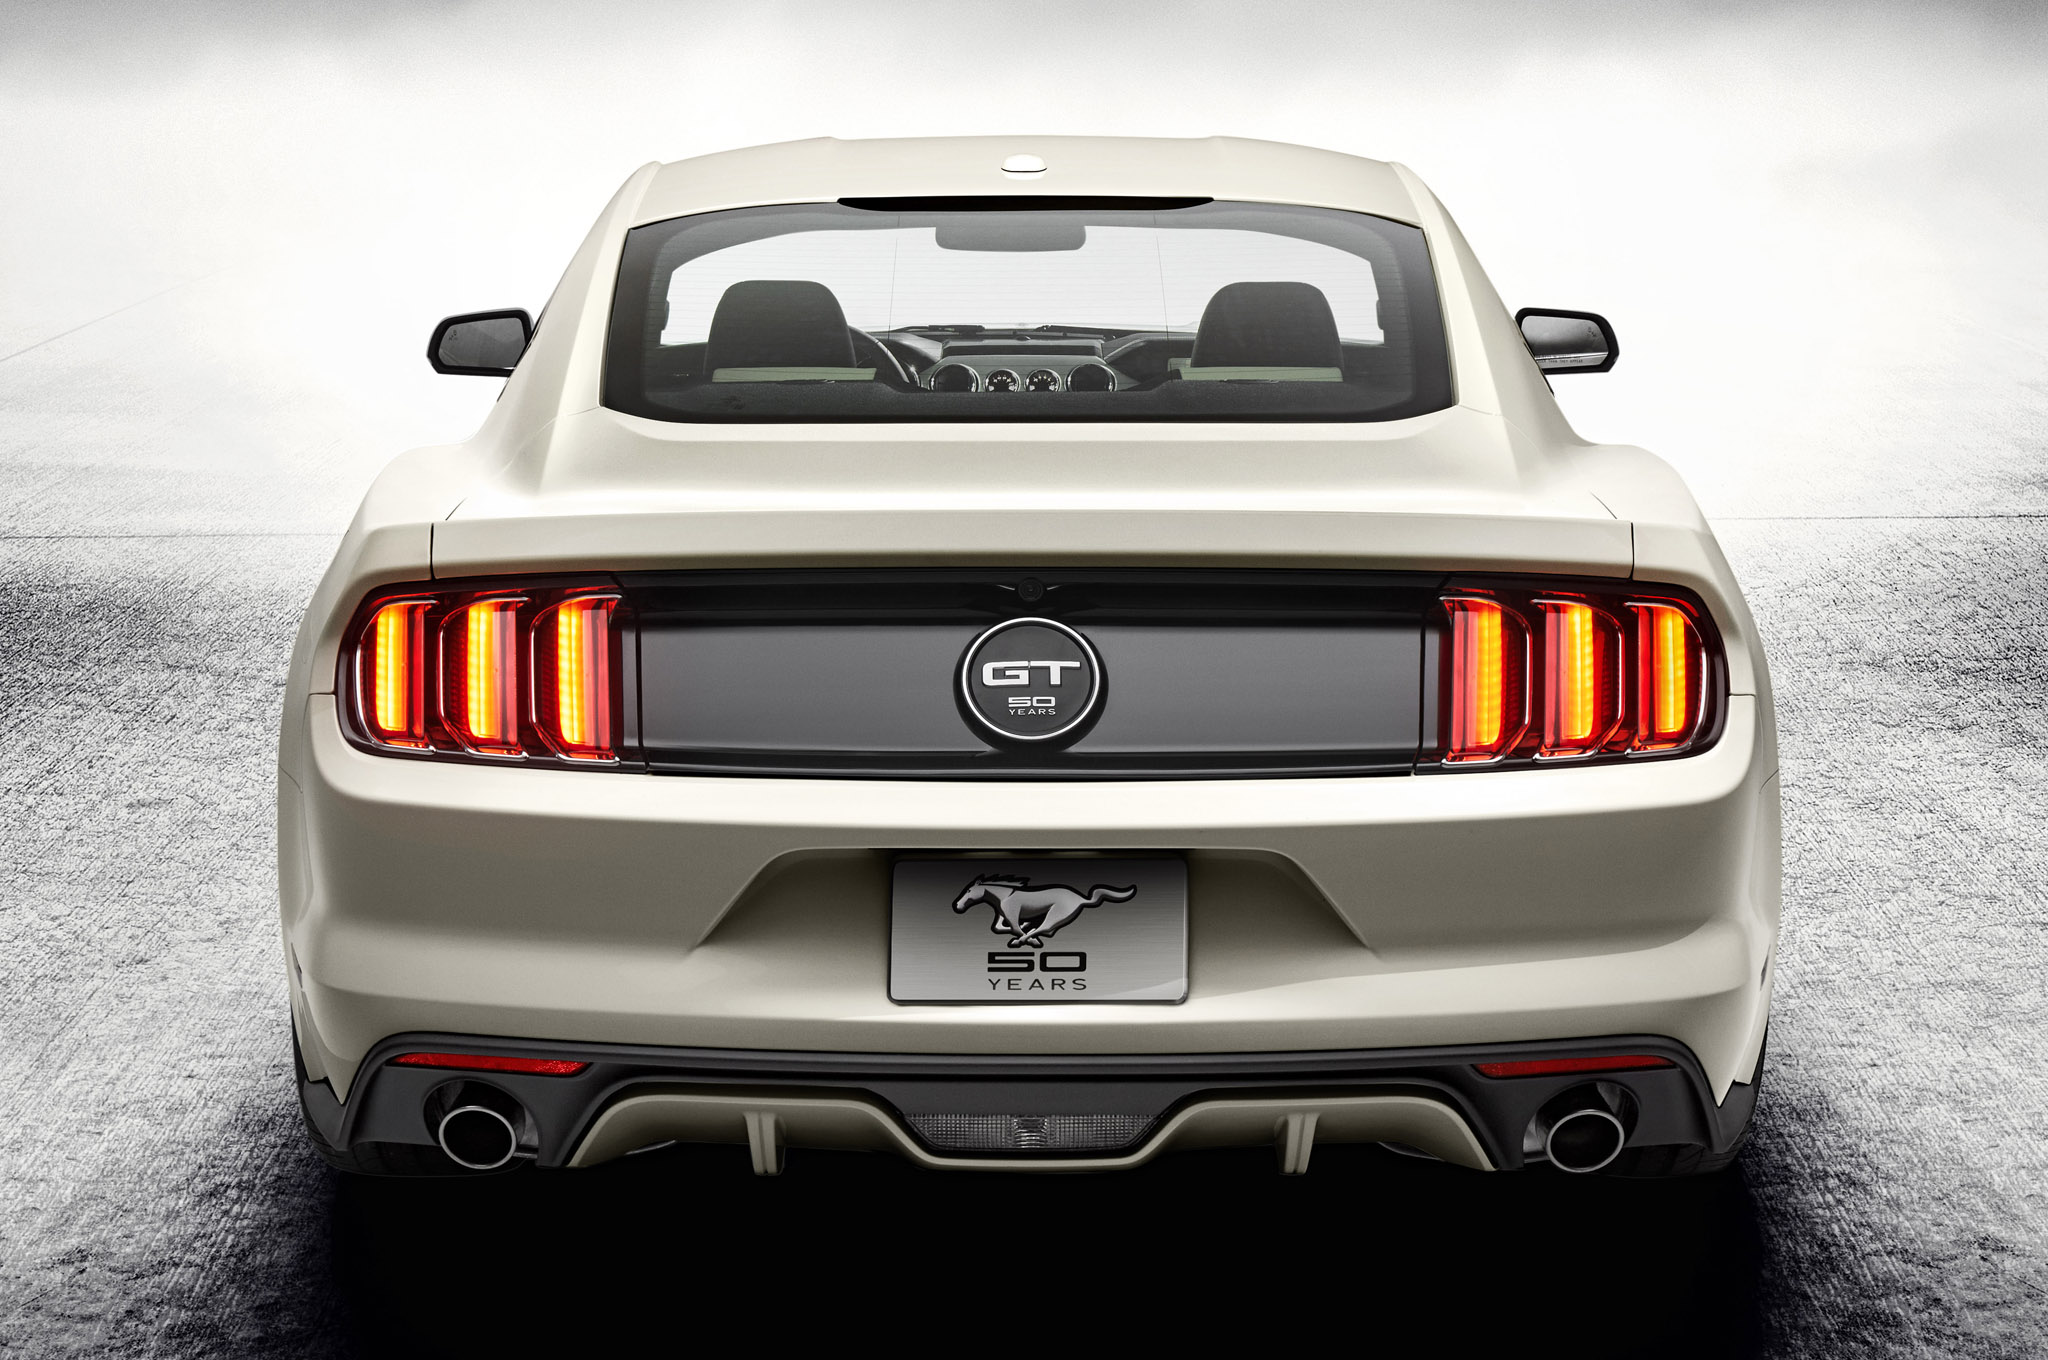 2019 Ford Mustang 50 Year Limited Edition photo - 2